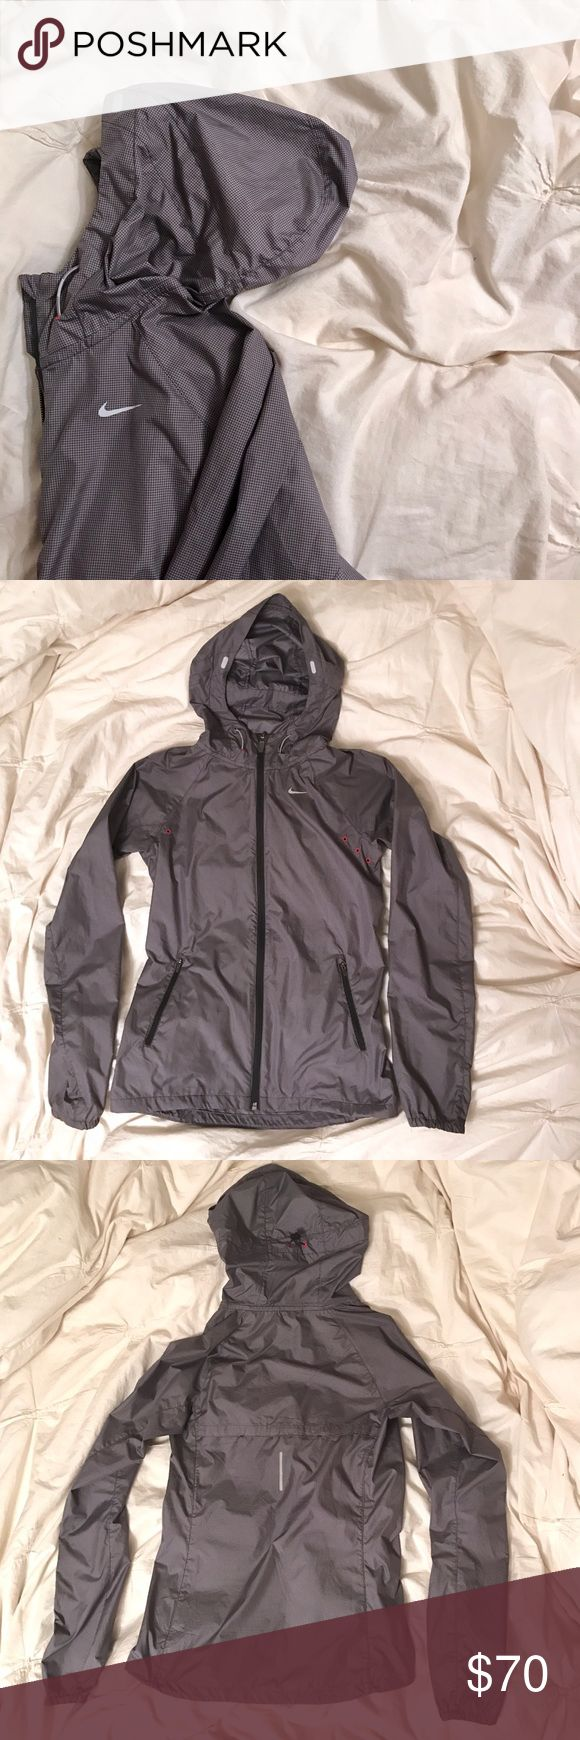 Nike Jacket Waterproof Nike Women's Running Jacket. Never worn, new condition. Thought I'd try taking up running... went for yoga instead  so this cute jacket never got used. Let me know if you have any questions :) bundle to save! Nike Jackets & Coats